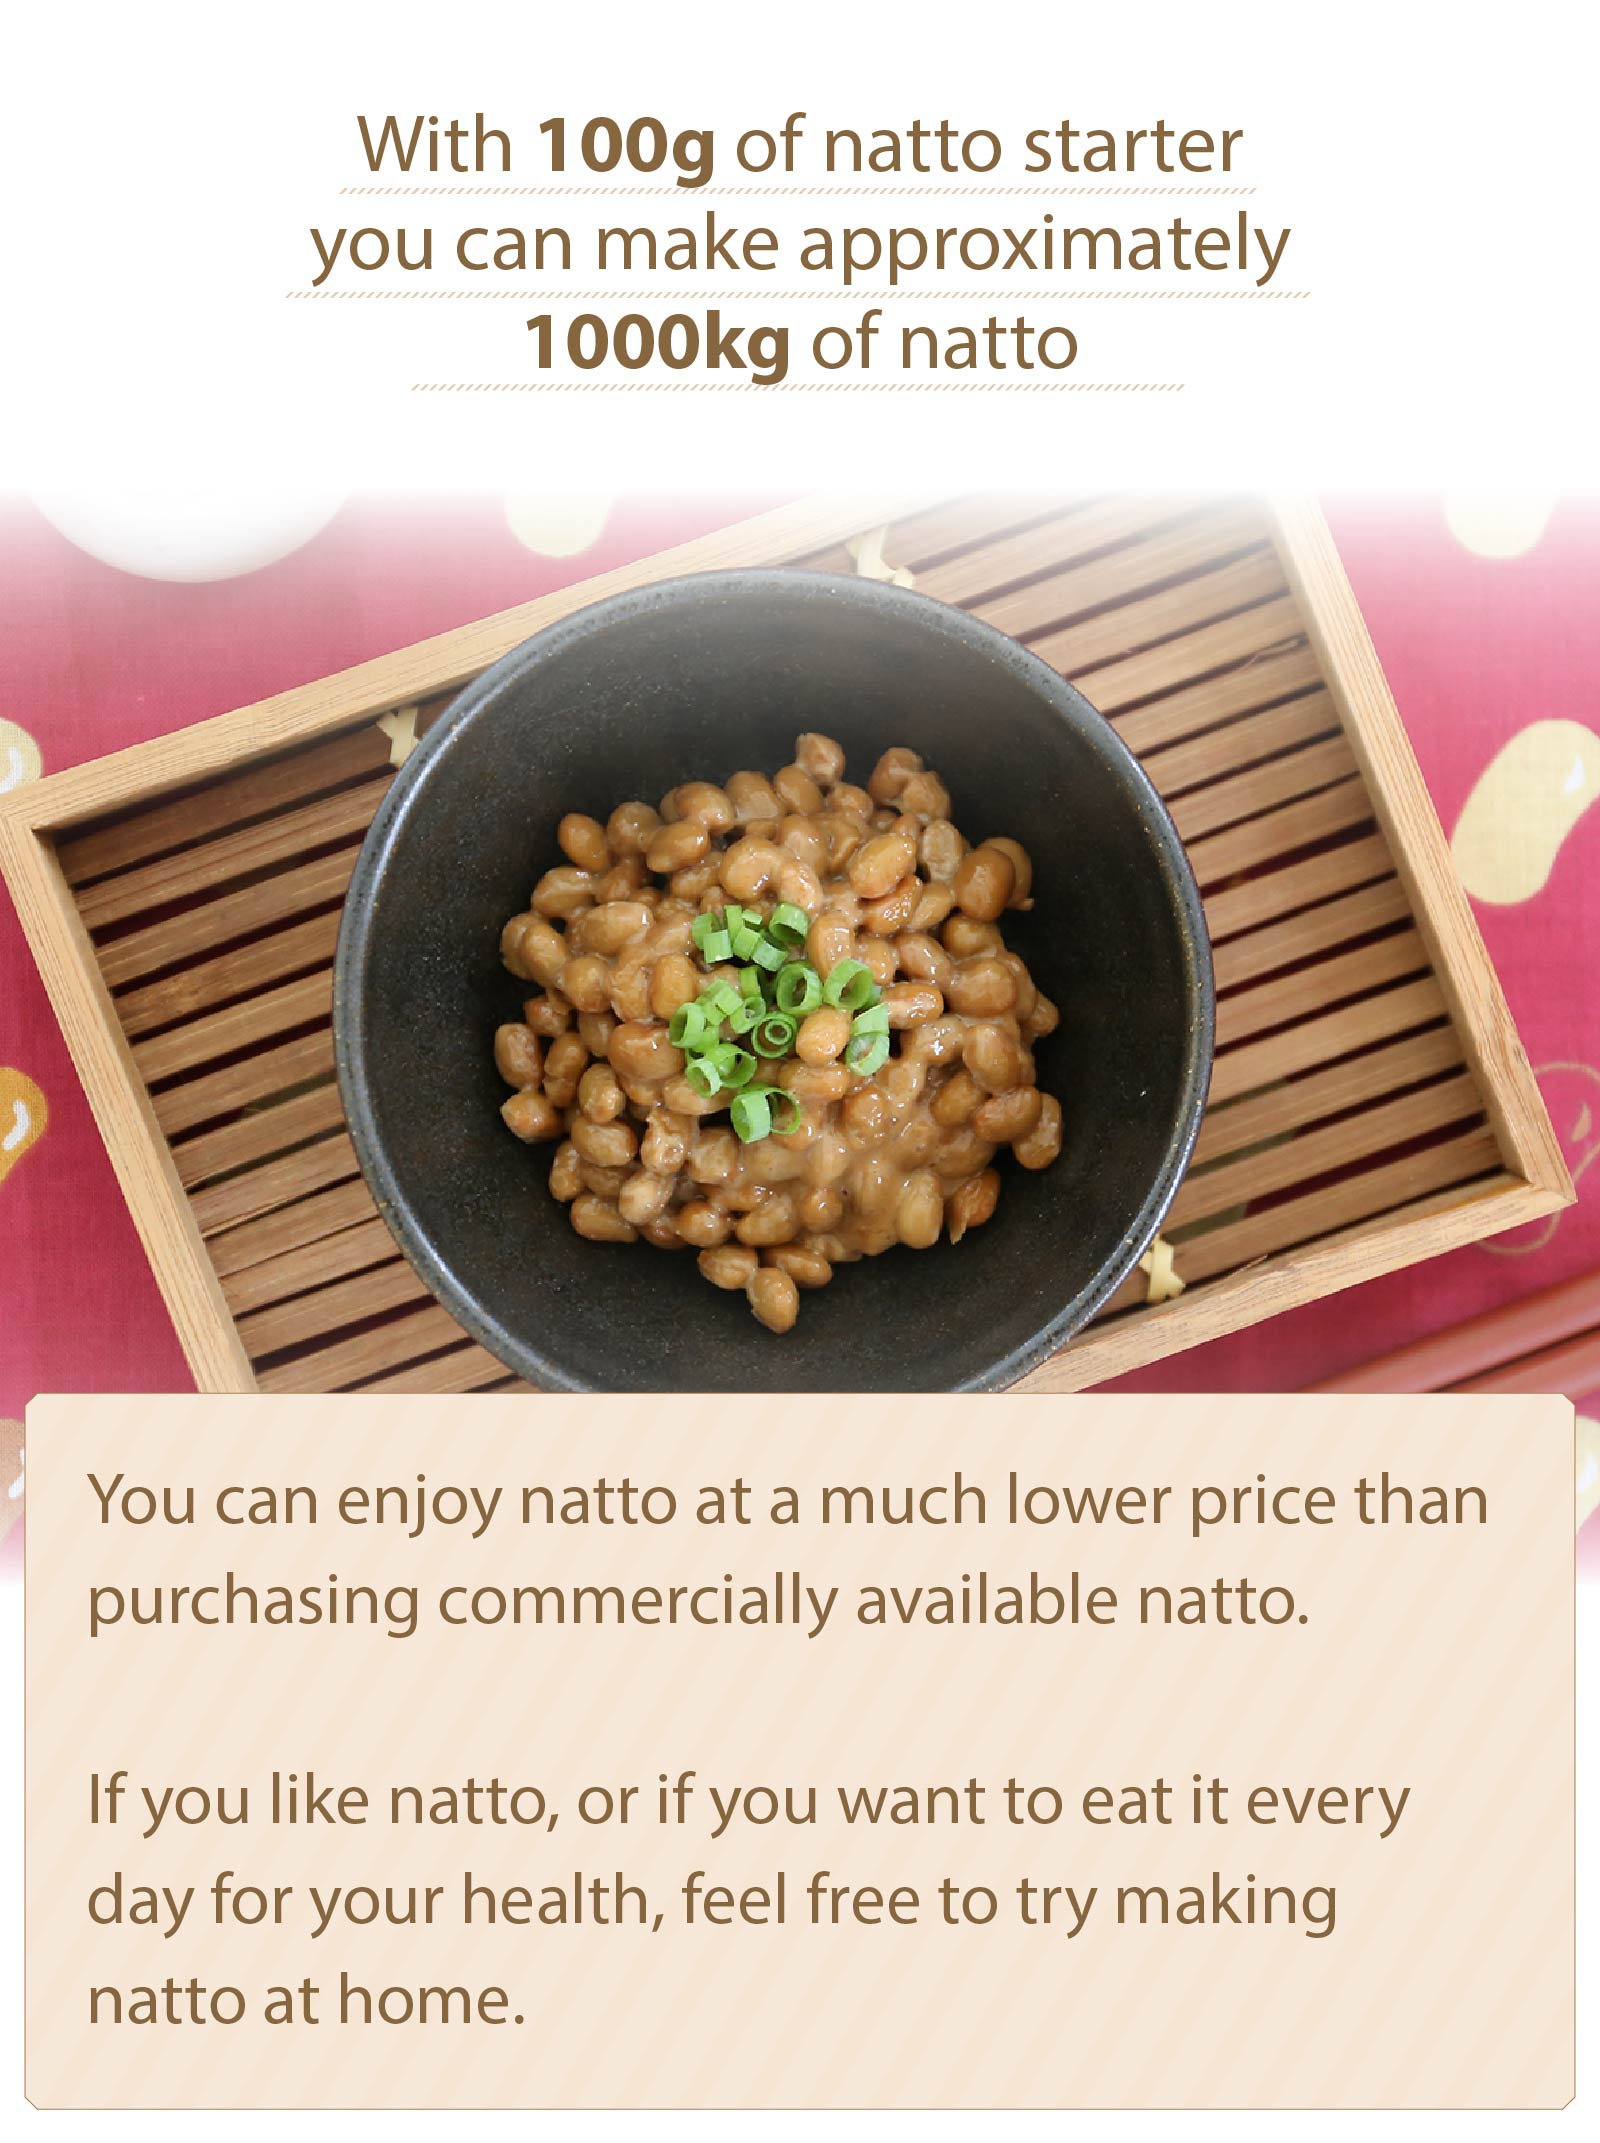 100g Natto Can Make Up to 1000kg of Natto